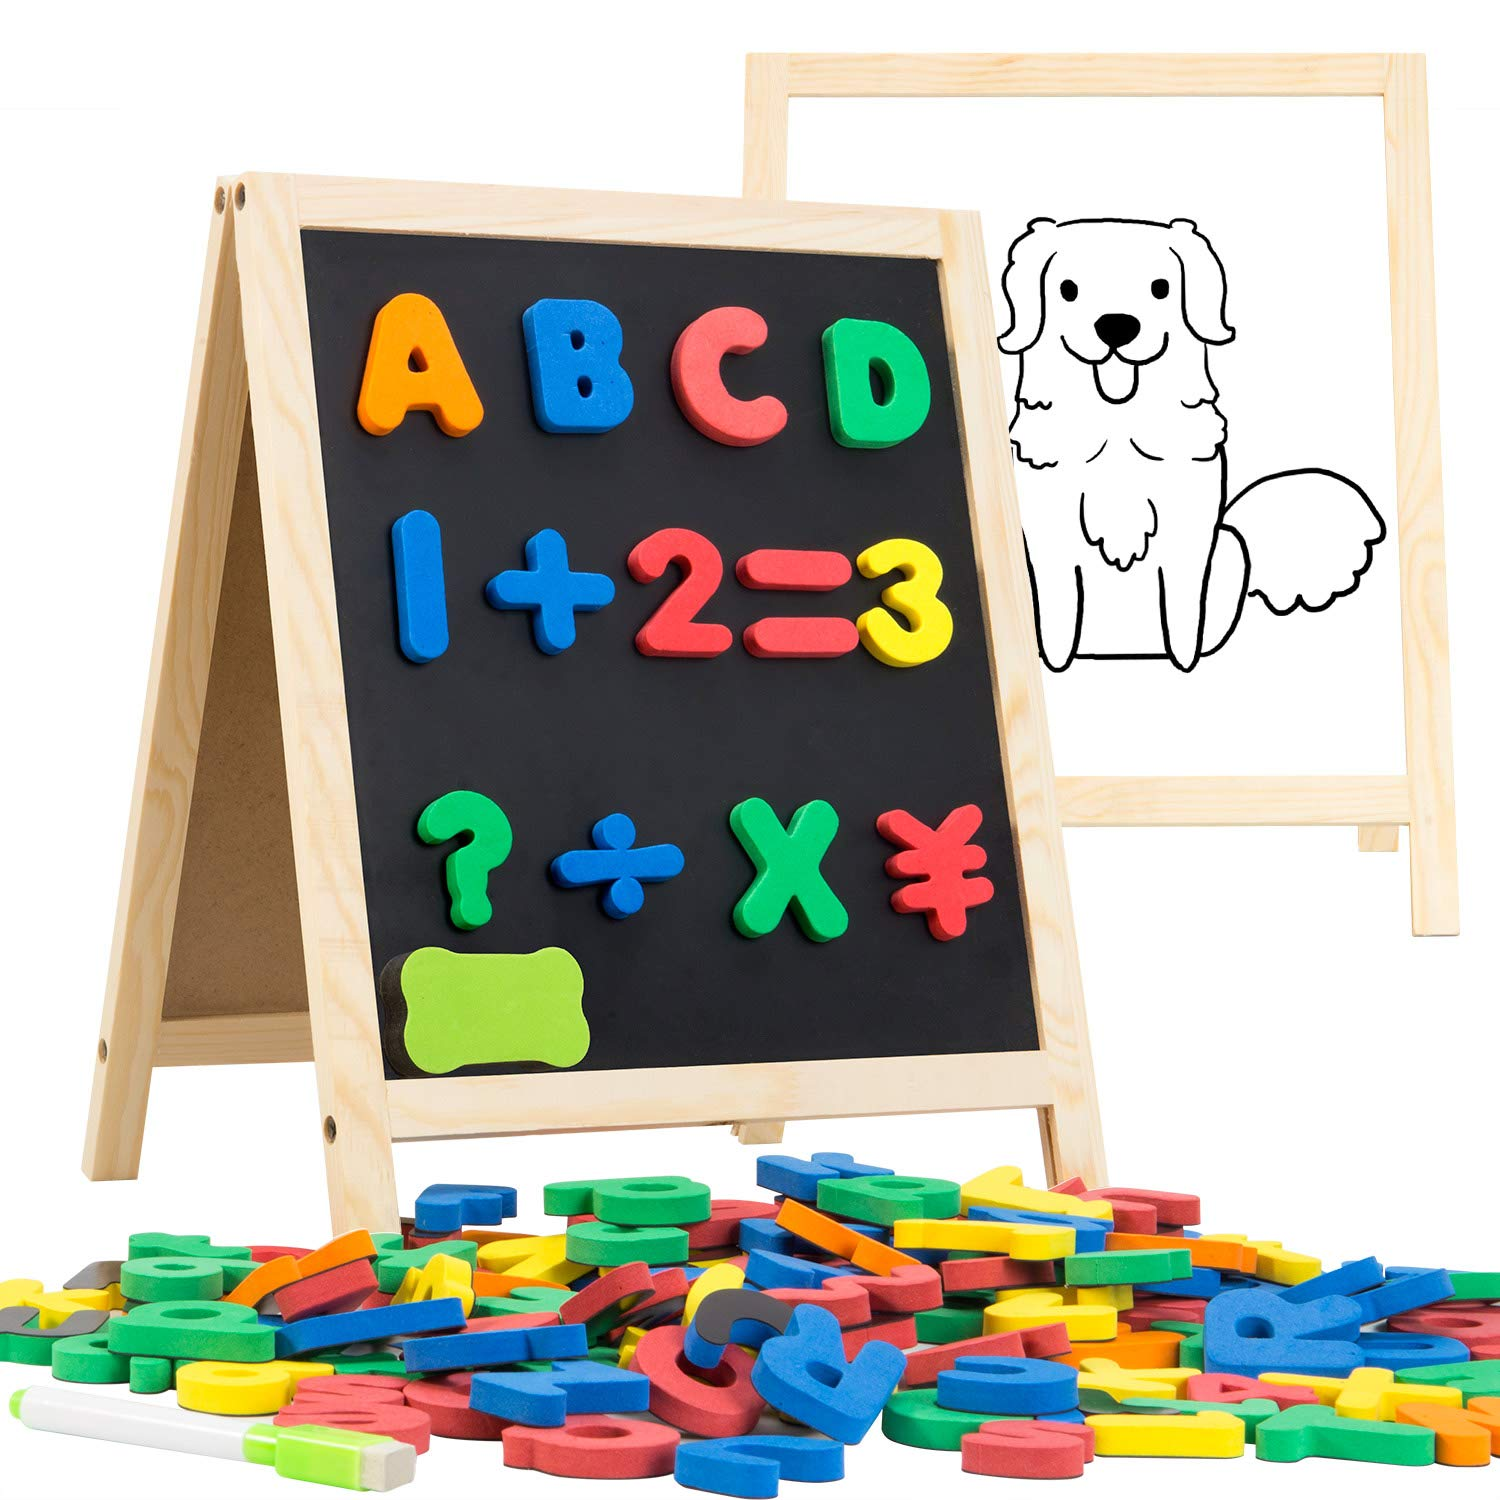 INNOCHEER Magnetic Letters and Numbers with Easel for Kids- 133 Pieces Alphabet Magnets, Educational Dry Erase Board - Whiteboard & Chalkboard for Toddlers Writing & Drawing by INNOCHEER